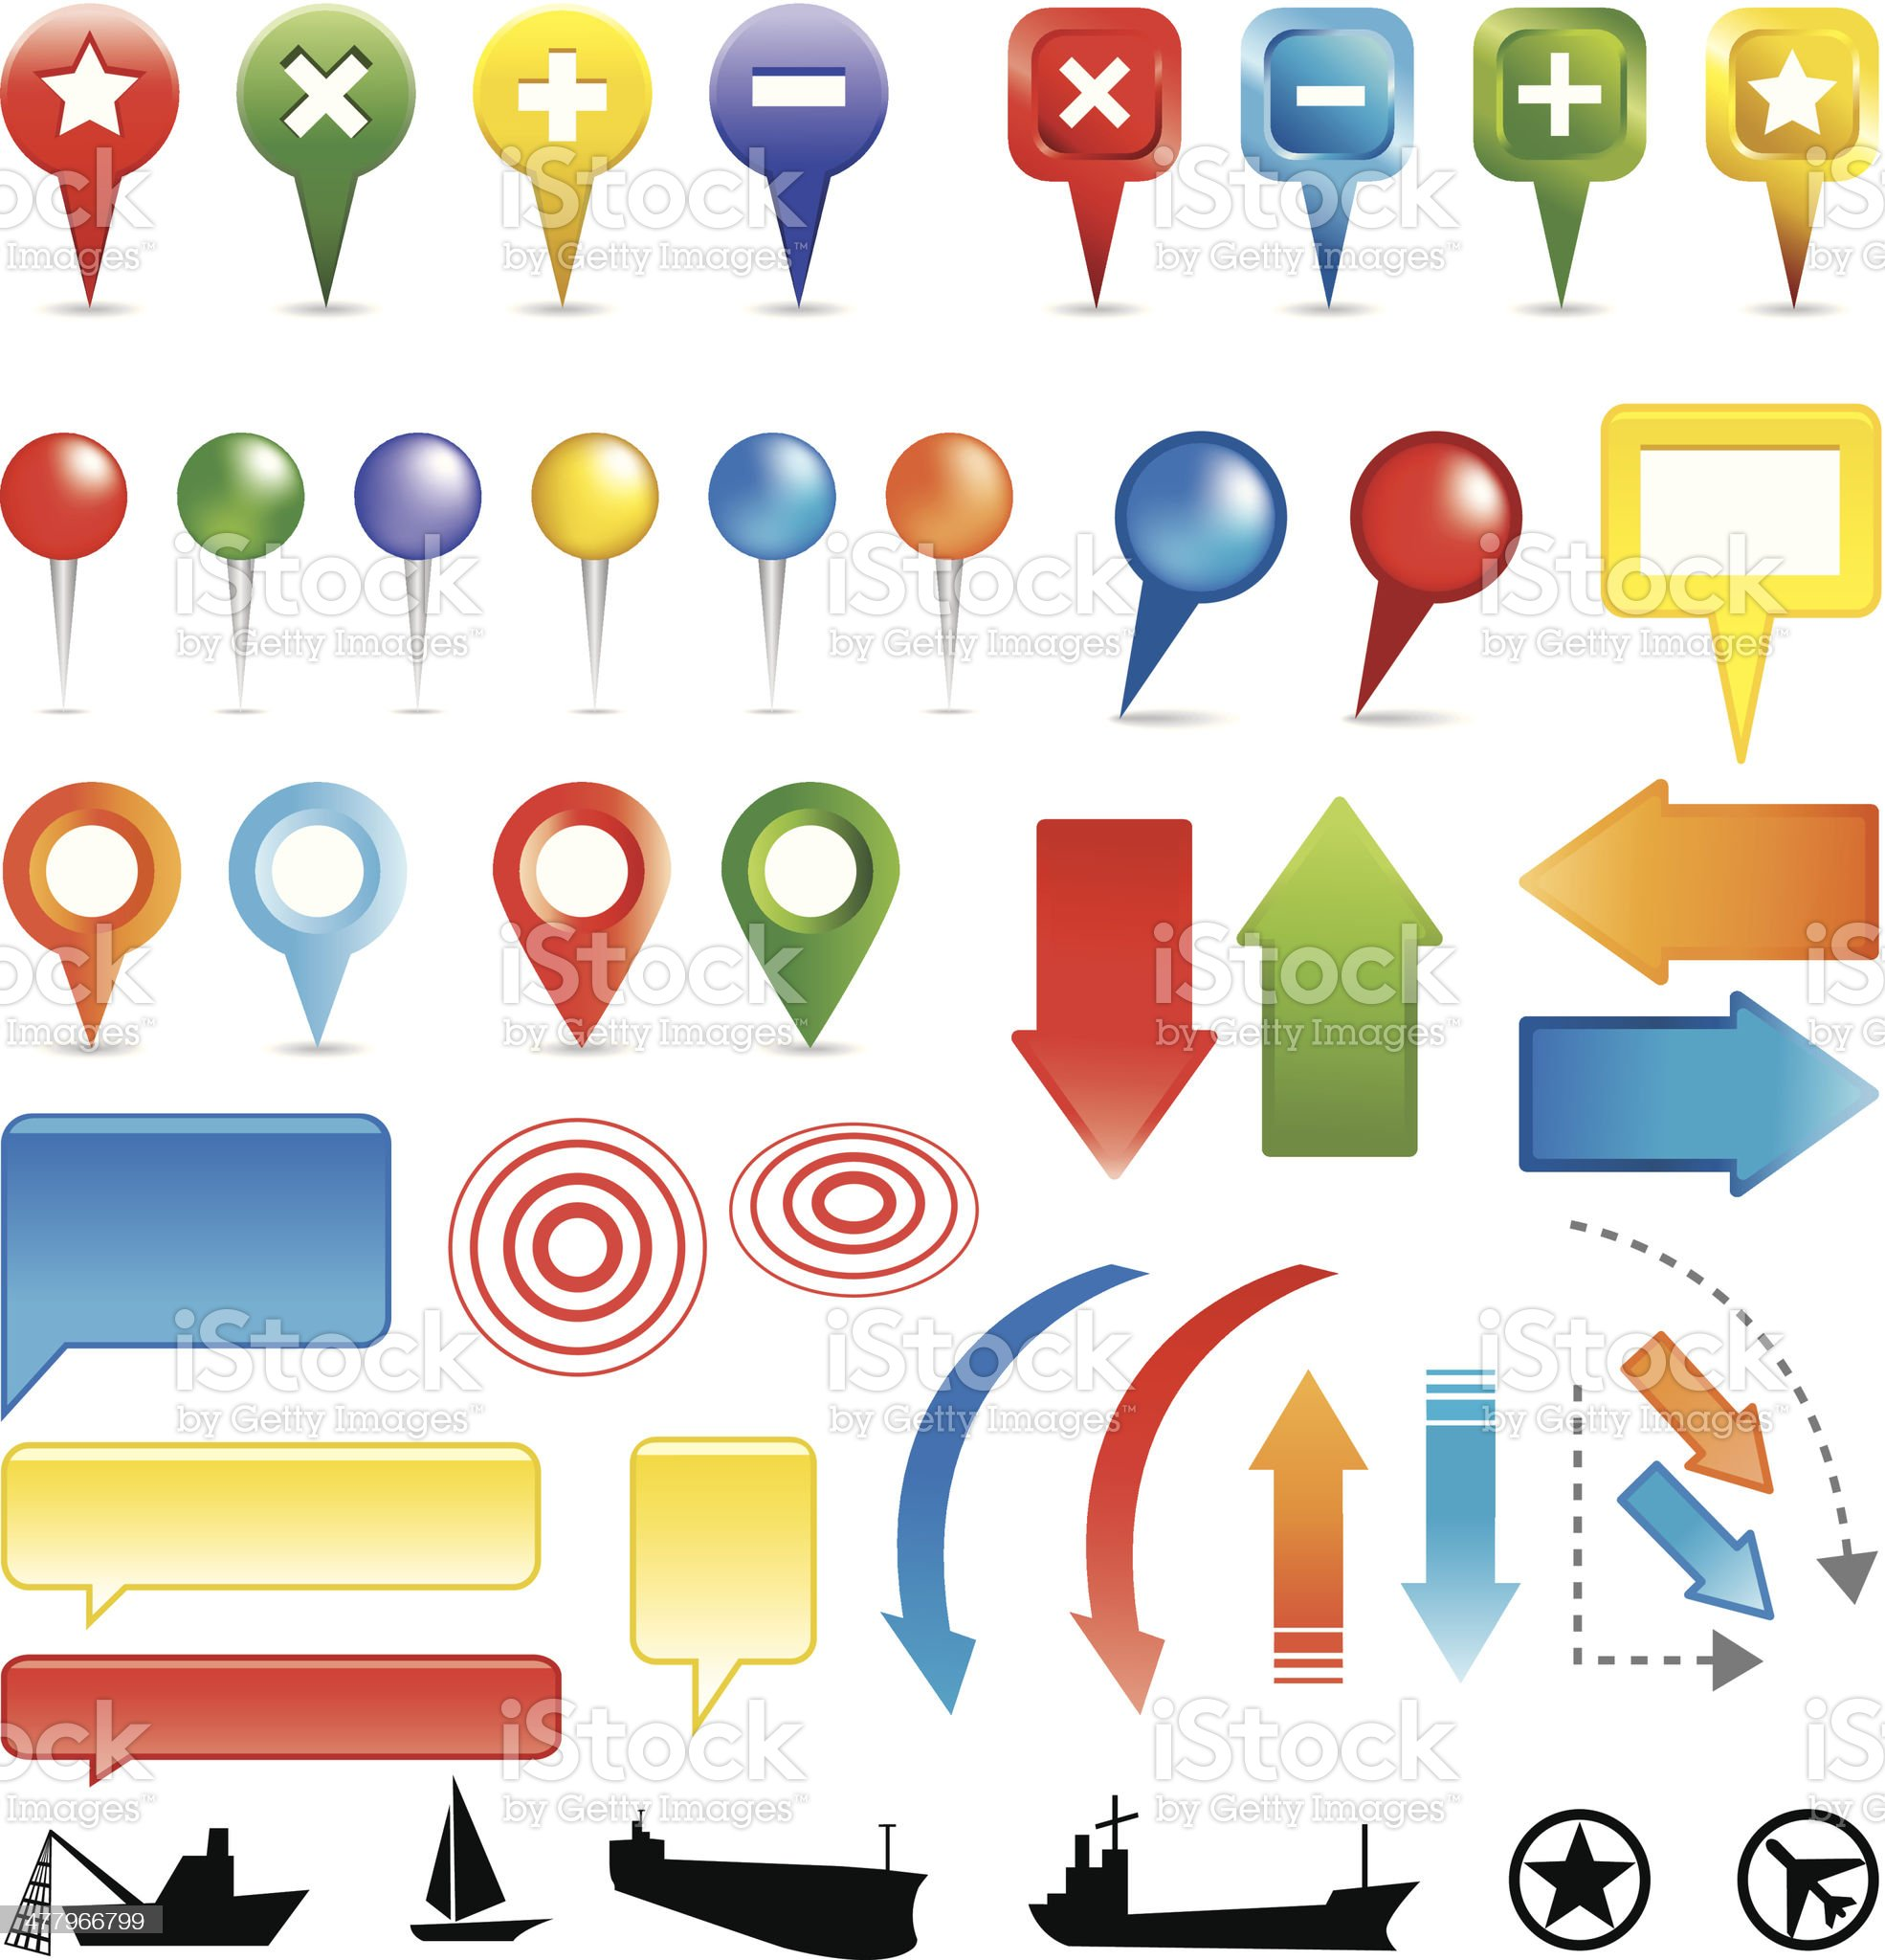 Map Markers colorful royalty-free stock vector art